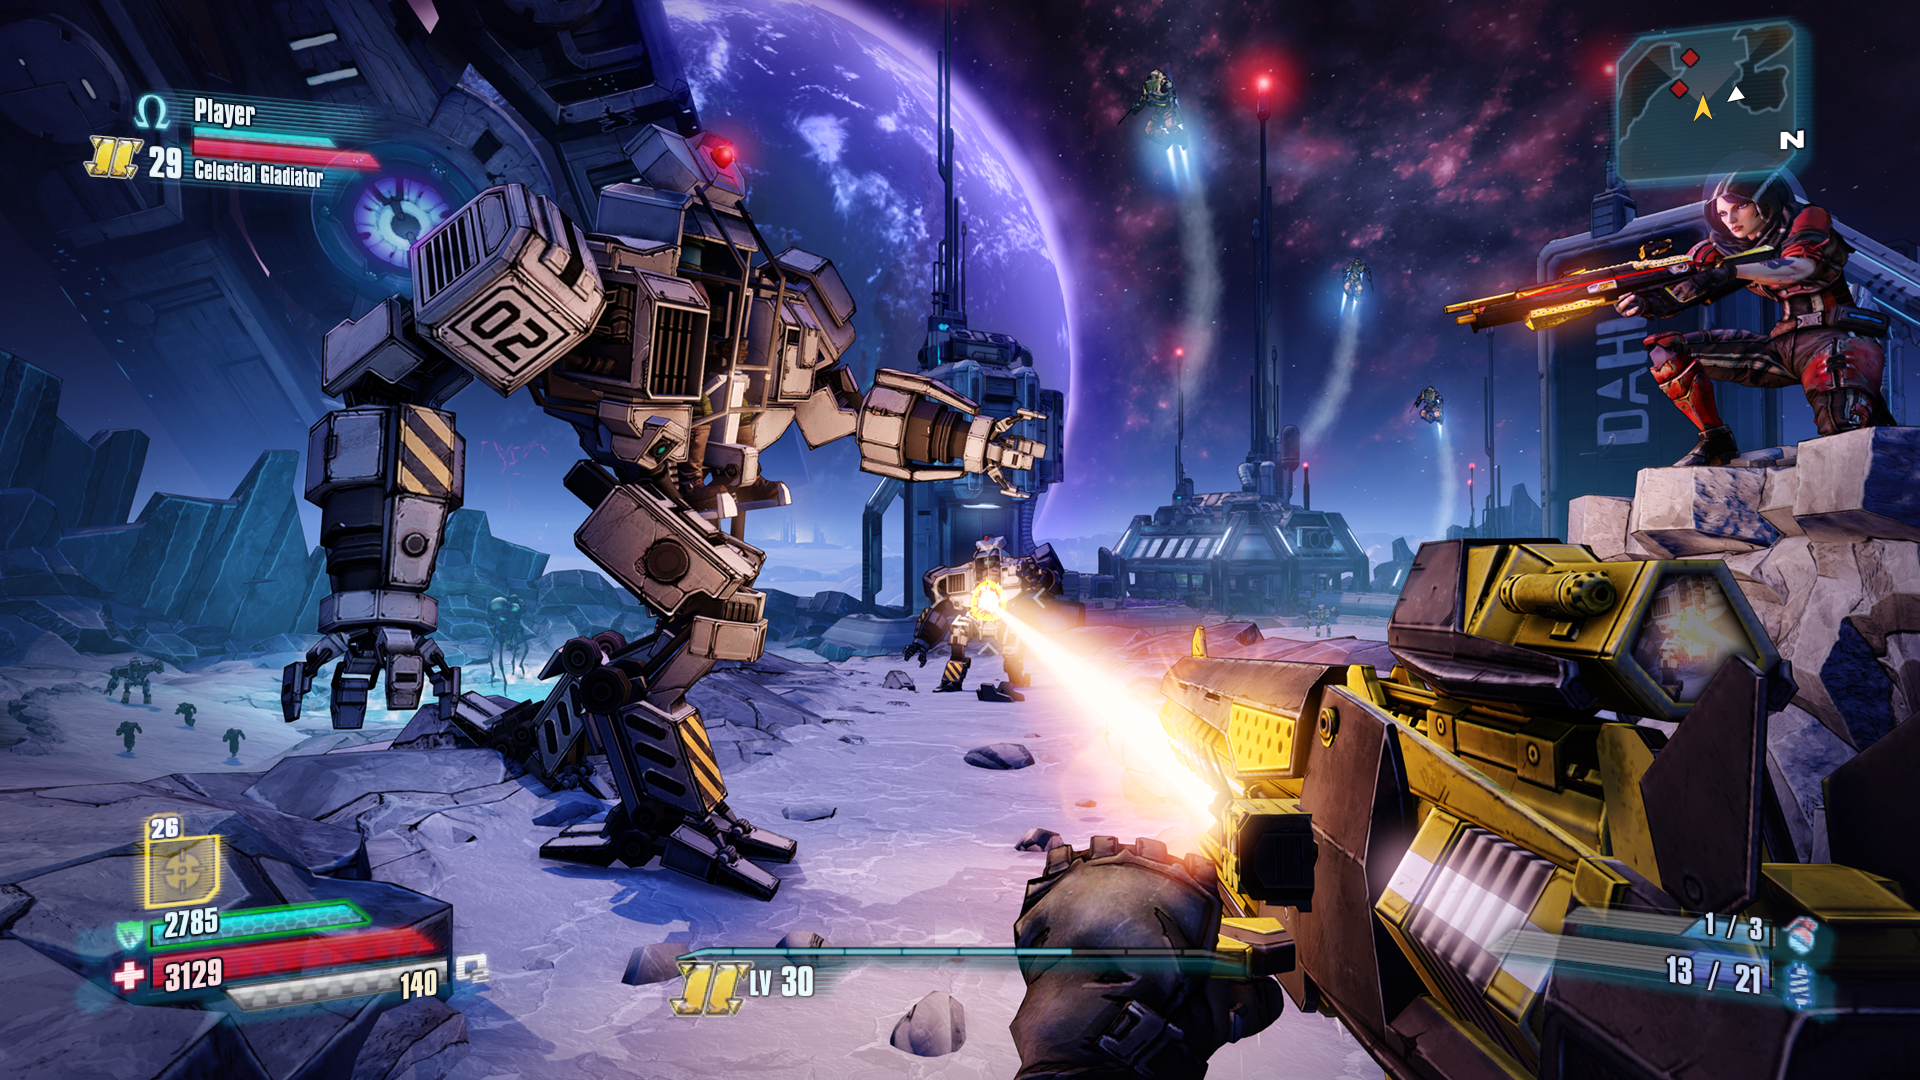 2k_borderlands_thepre-sequel_ingameart_moonmechs_1stperson